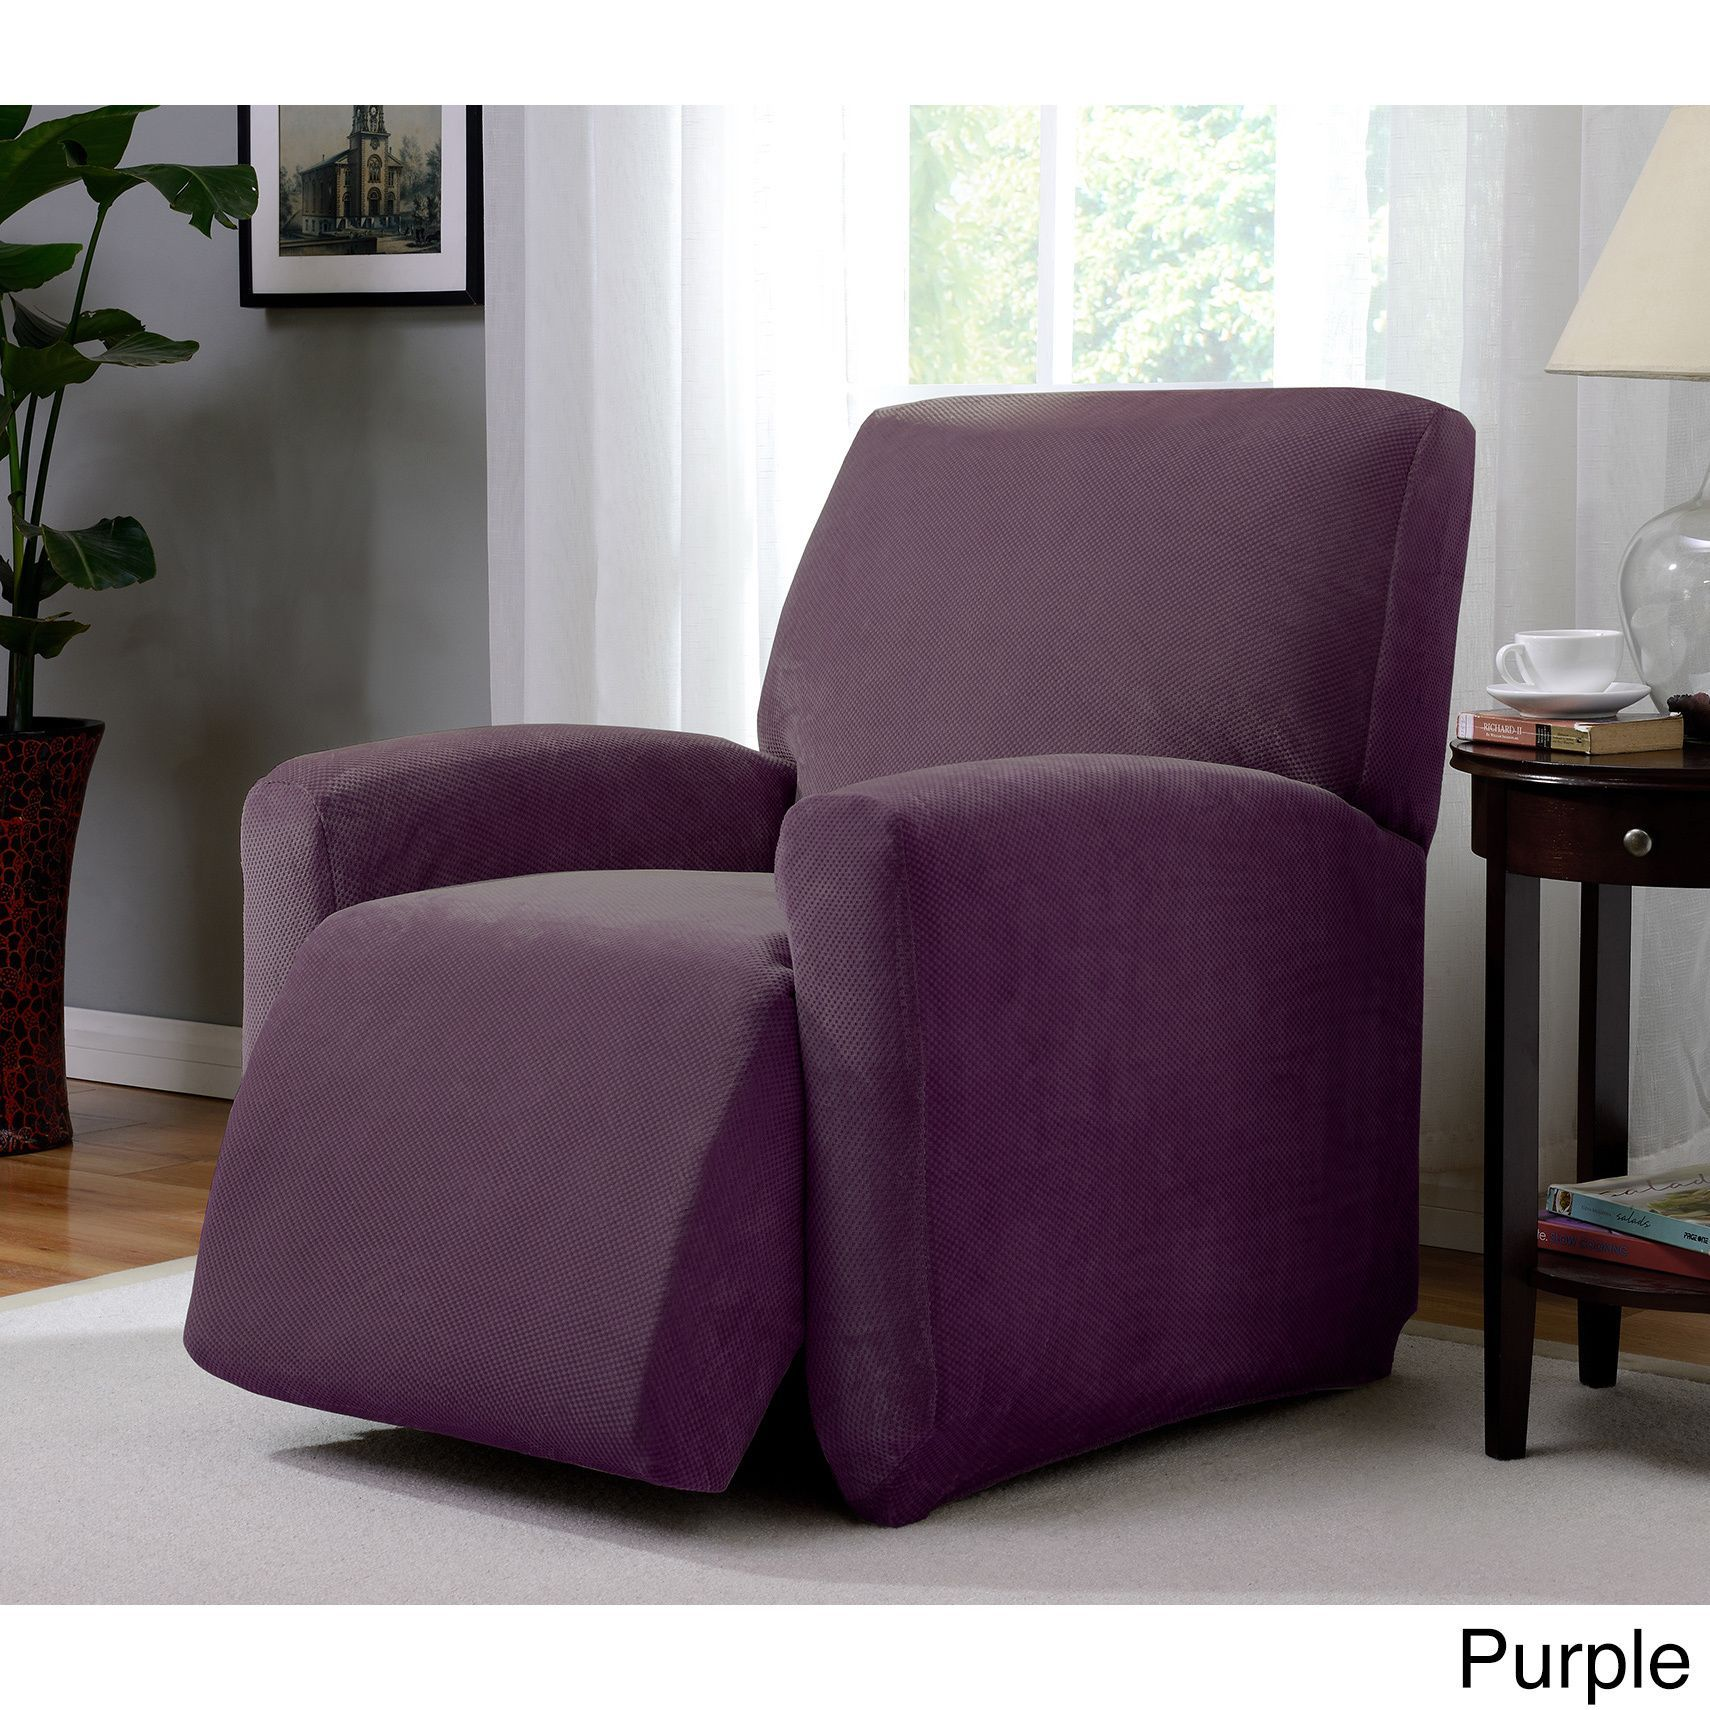 recliners p bar chair jumbo recliner the for slipcovers wing raise stretch slipcover